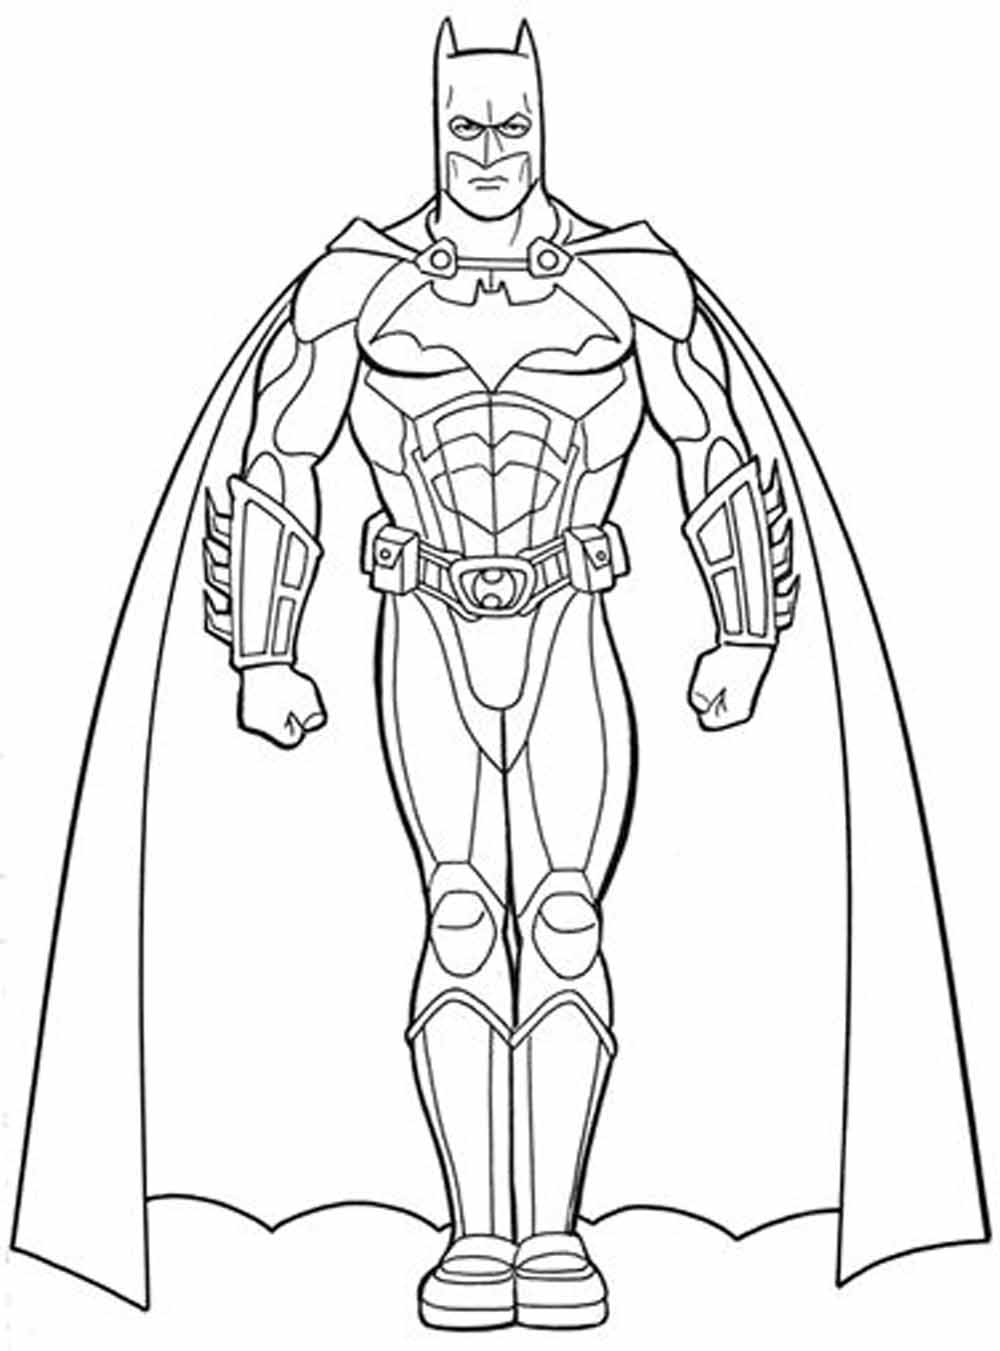 coloring batman printable get this printable batman coloring pages 811910 printable batman coloring